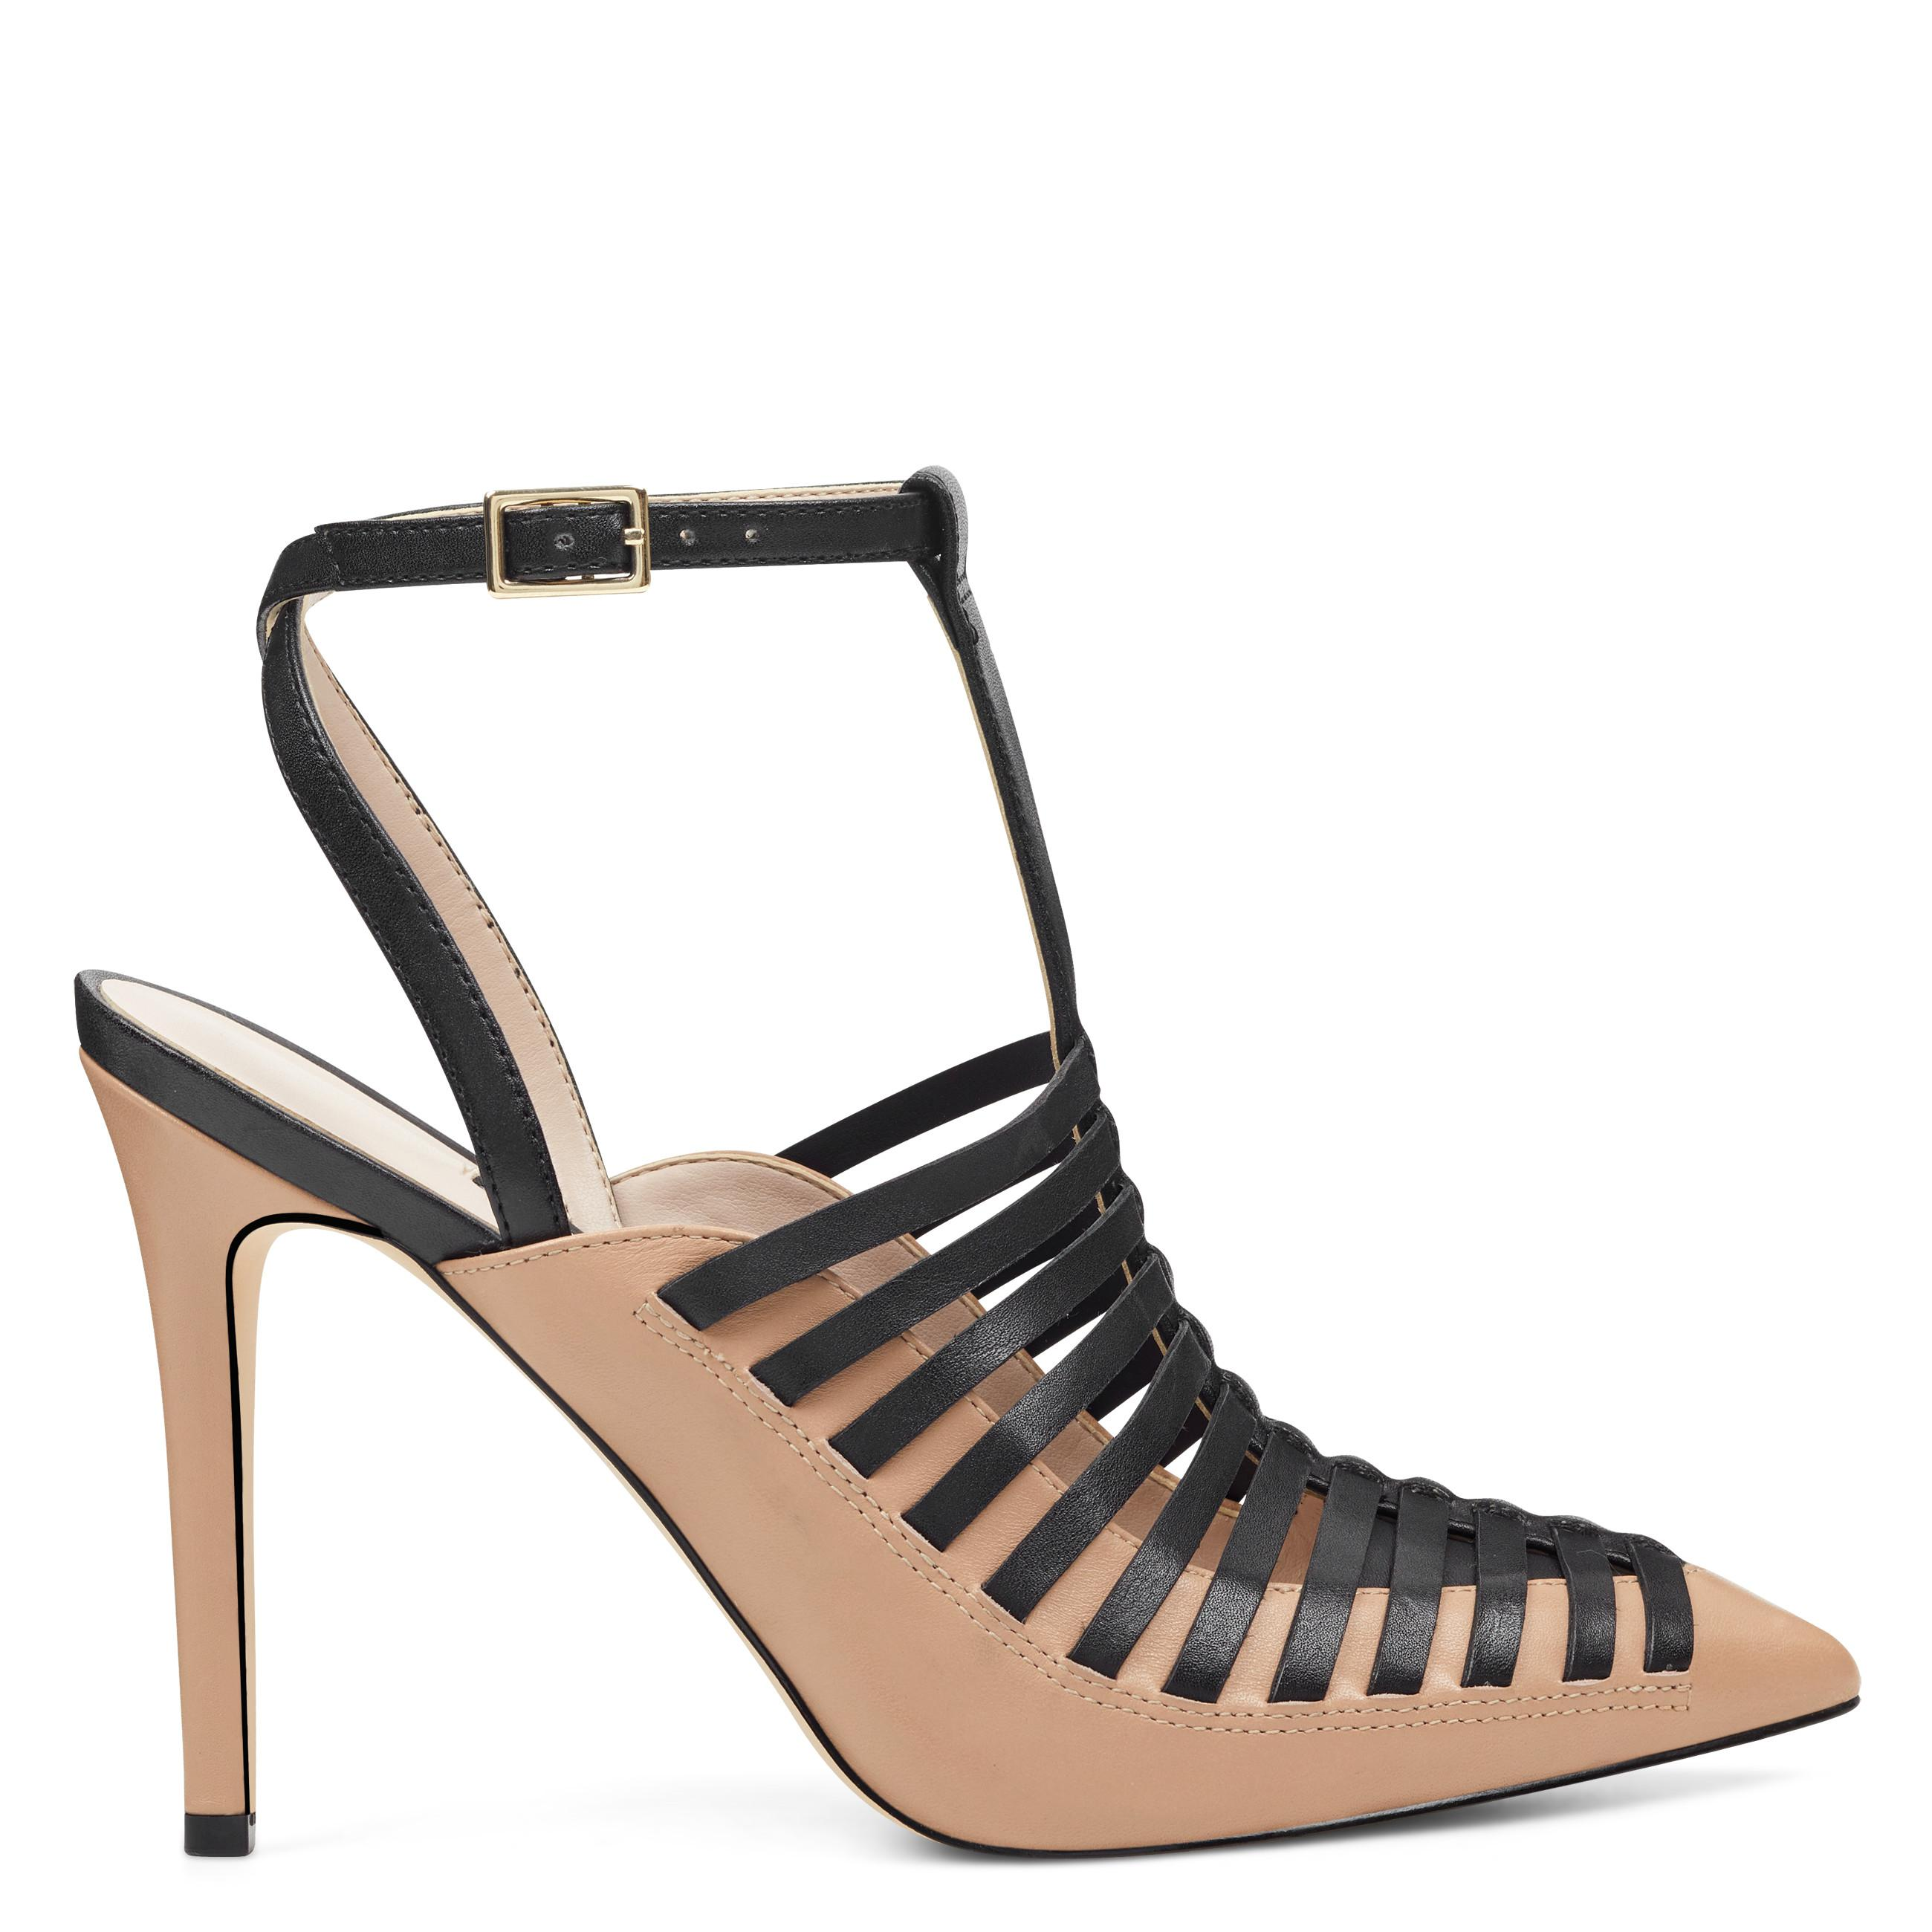 6072a9d5c67 Lyst - Nine West Tlank Strappy Pumps in Black - Save 64%